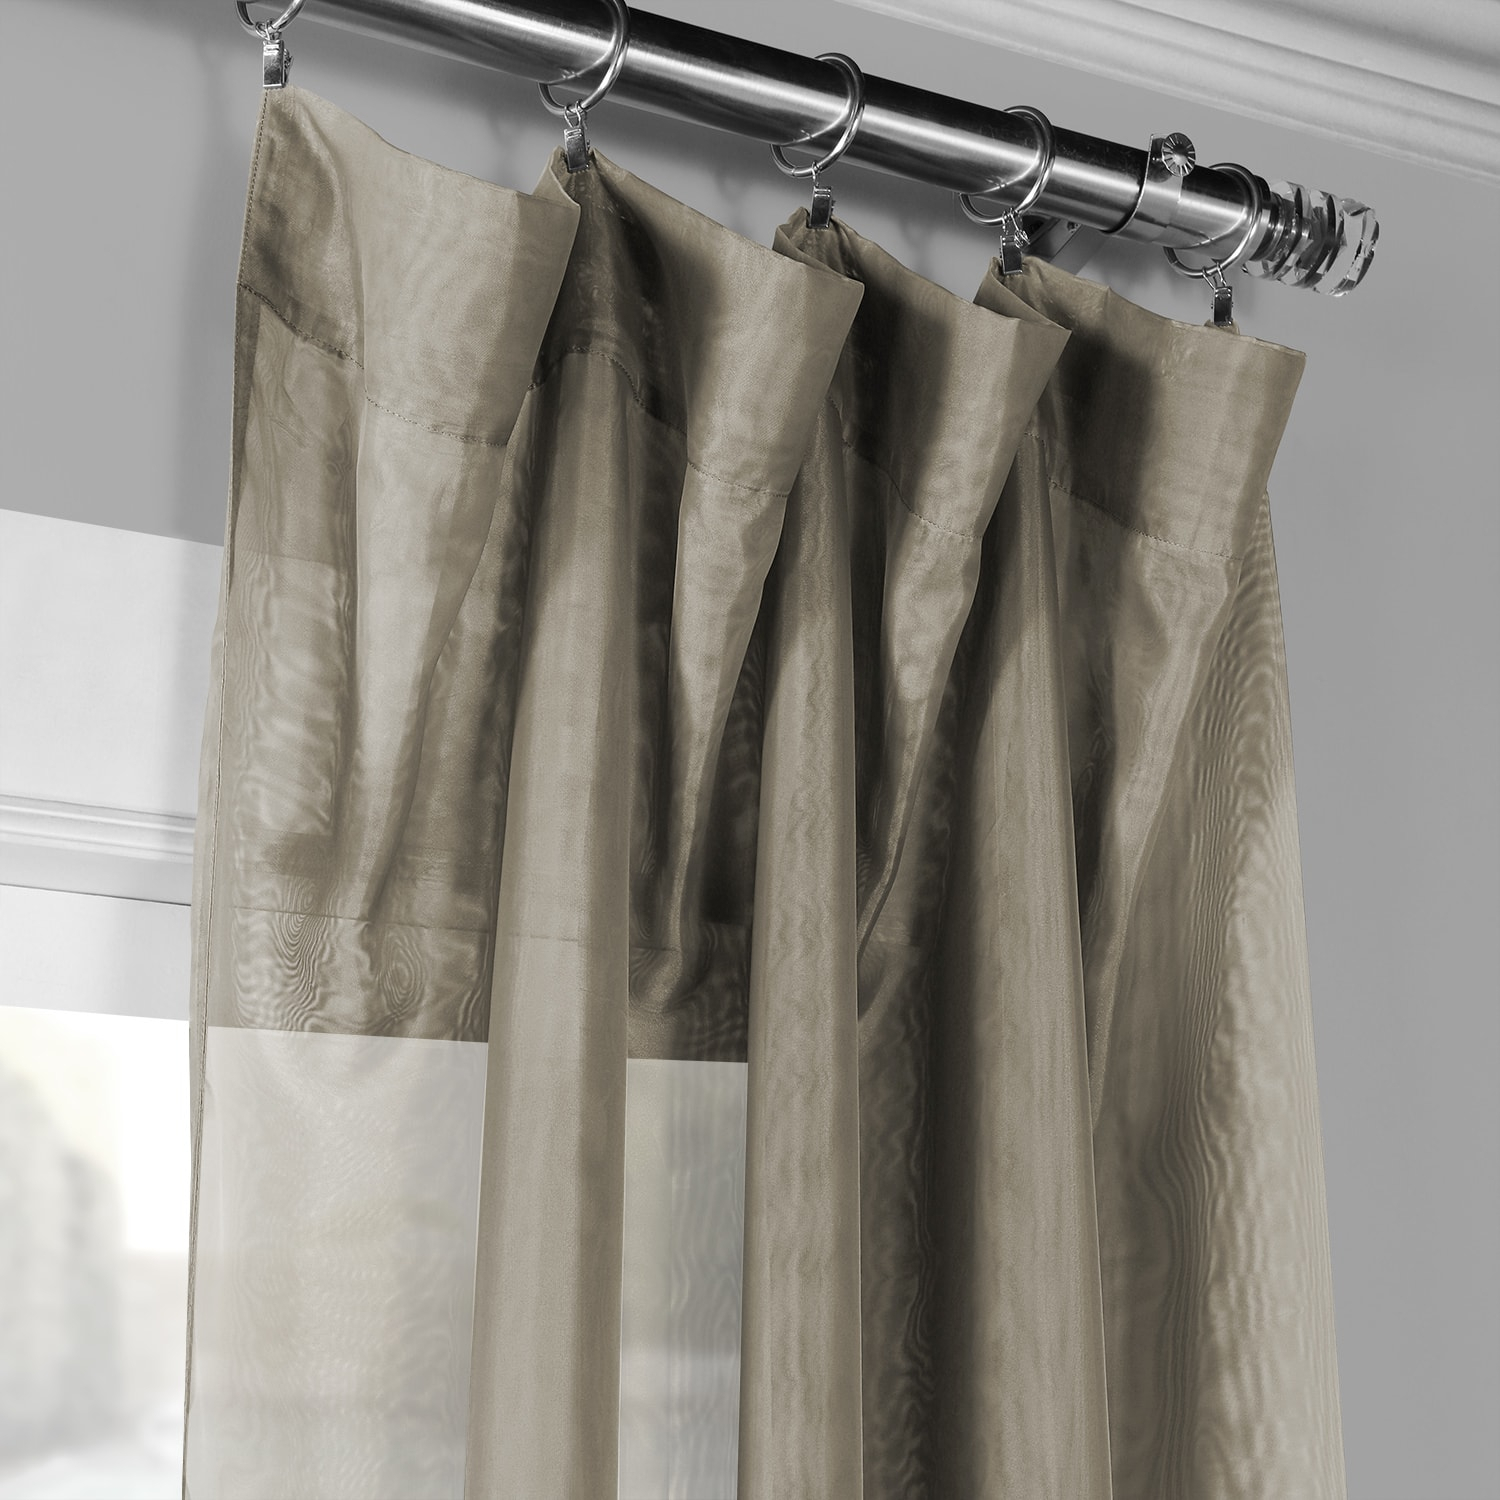 Signature Museum Grey Sheer Curtain Intended For Signature White Double Layer Sheer Curtain Panels (View 24 of 30)